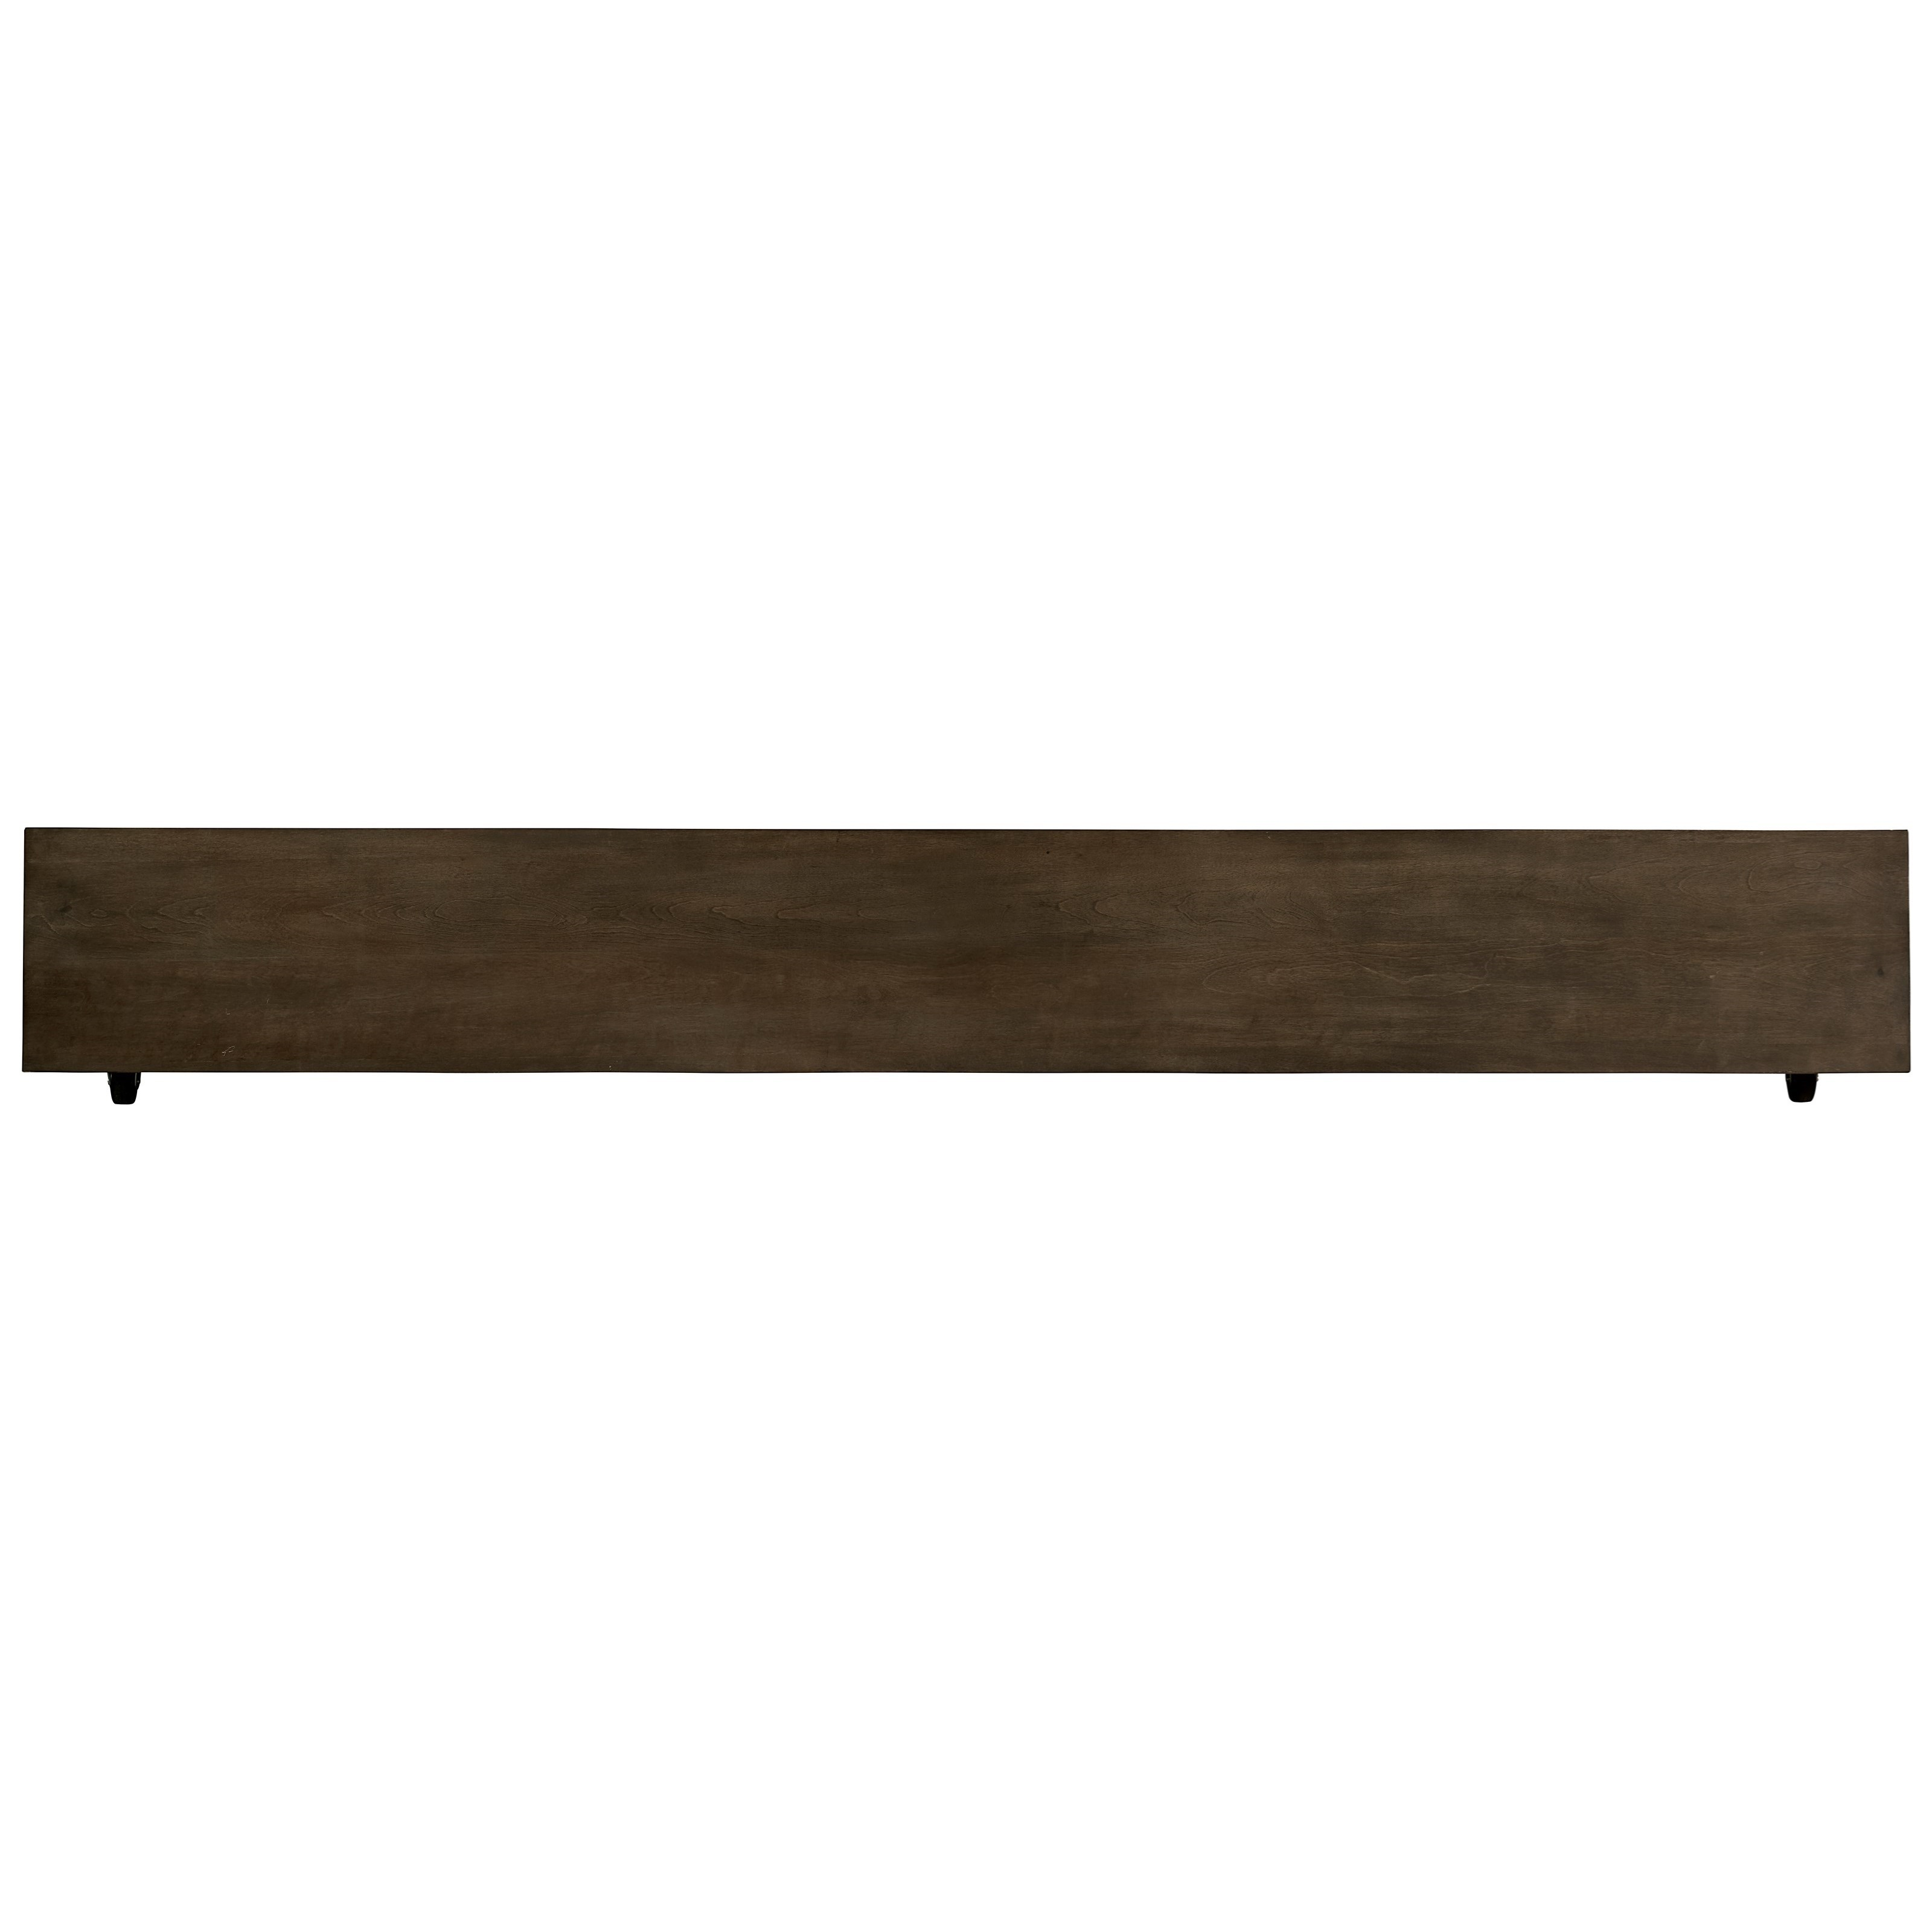 Stone & Leigh Furniture Chelsea Square Trundle Bed Storage Drawer - Item Number: 584-13-69